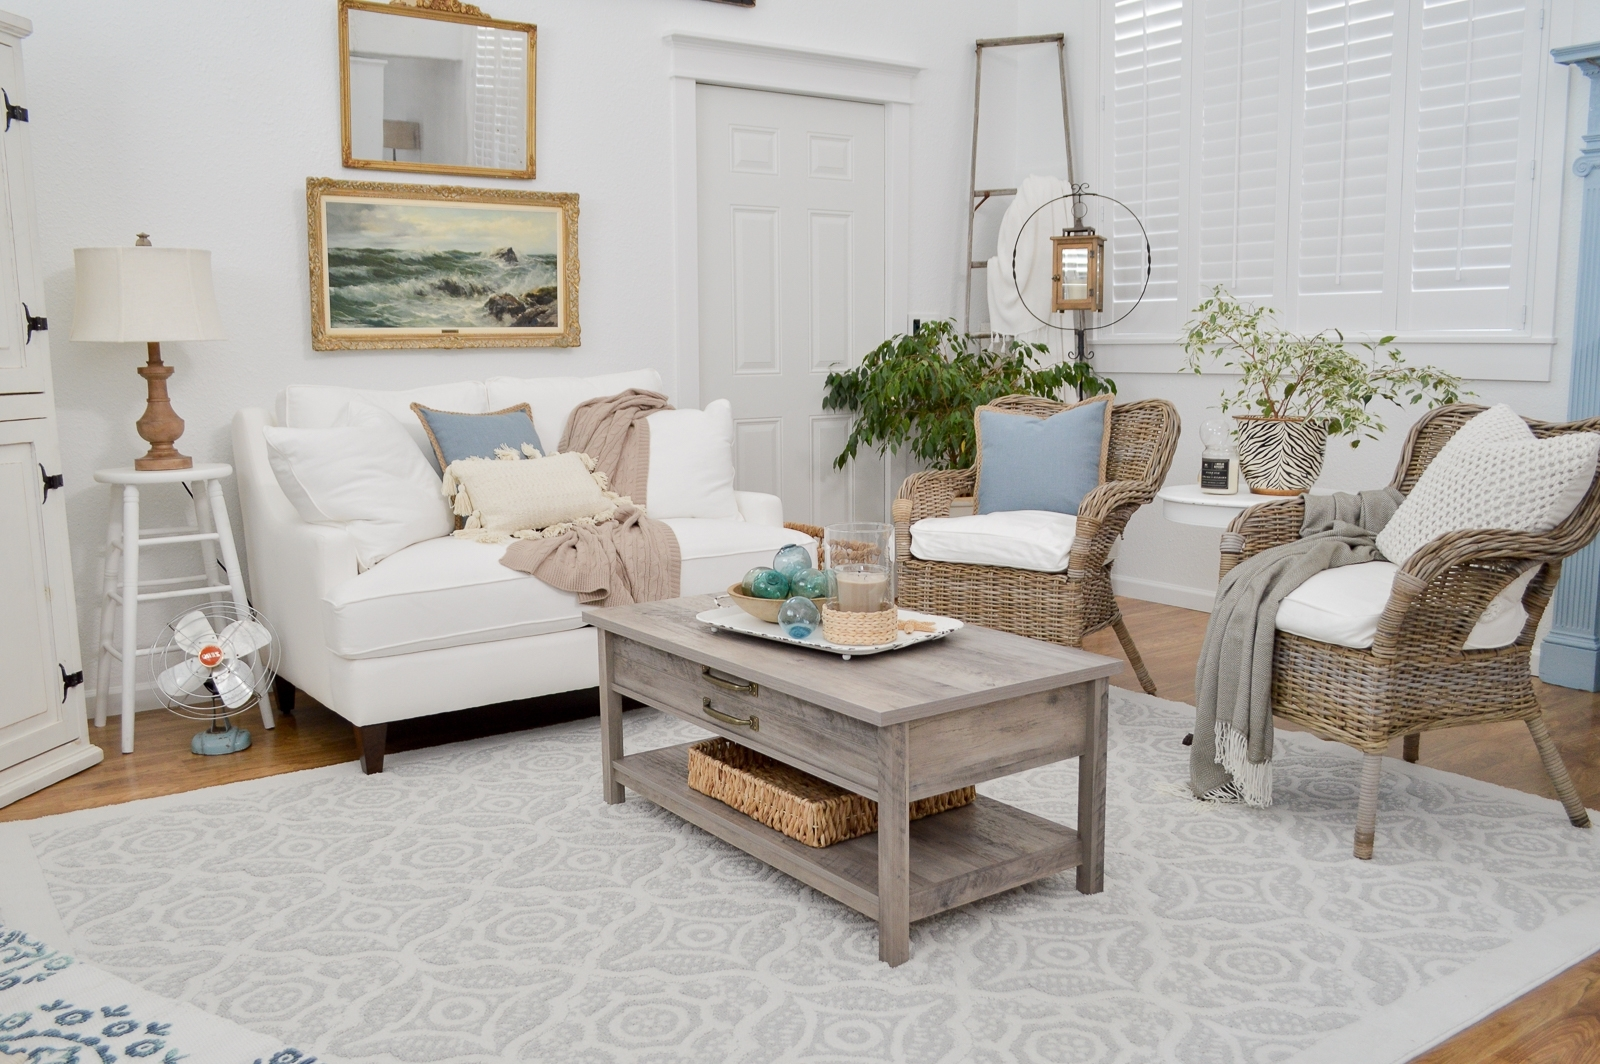 New Home Decorating Tips And Ideas Fox Hollow Cottage 40+ Better Homes Living Room Ideas